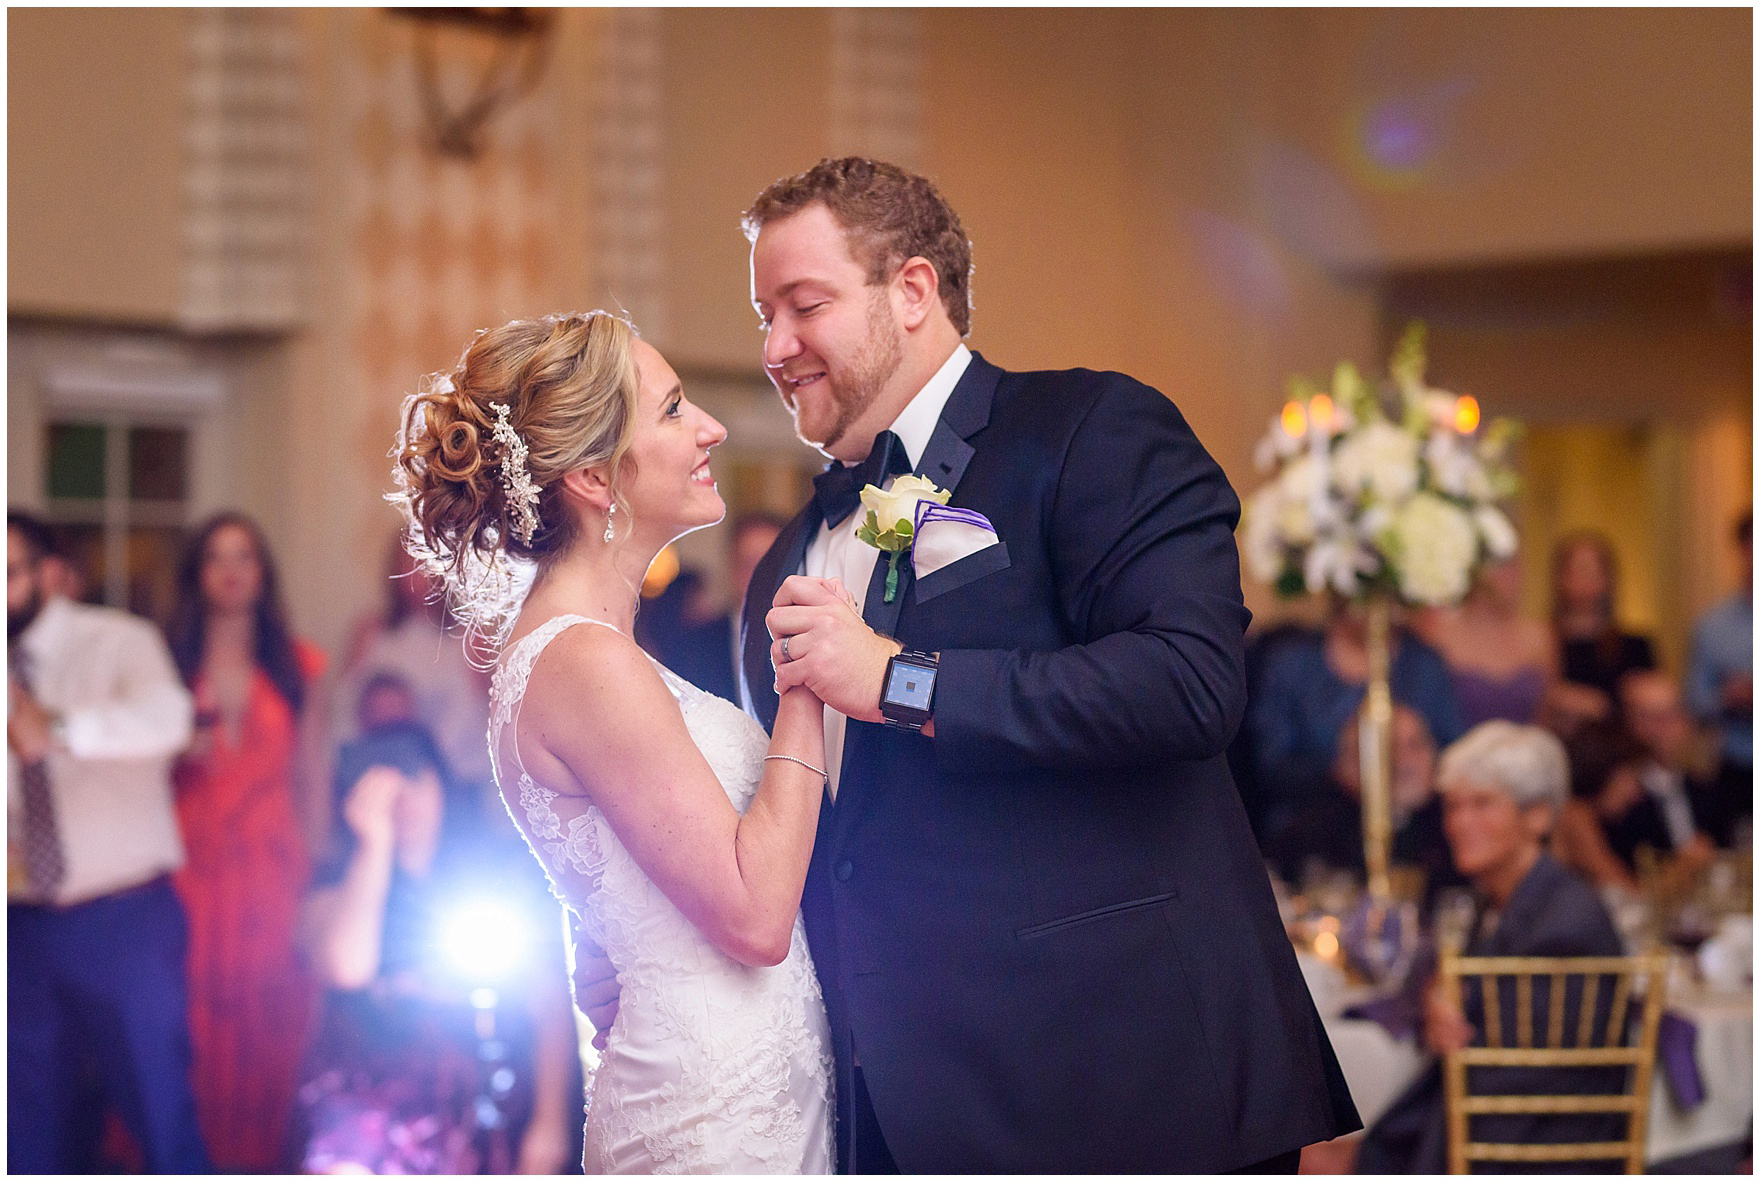 The bride and groom share their first dance during a Glen Club Glenview Illinois wedding.